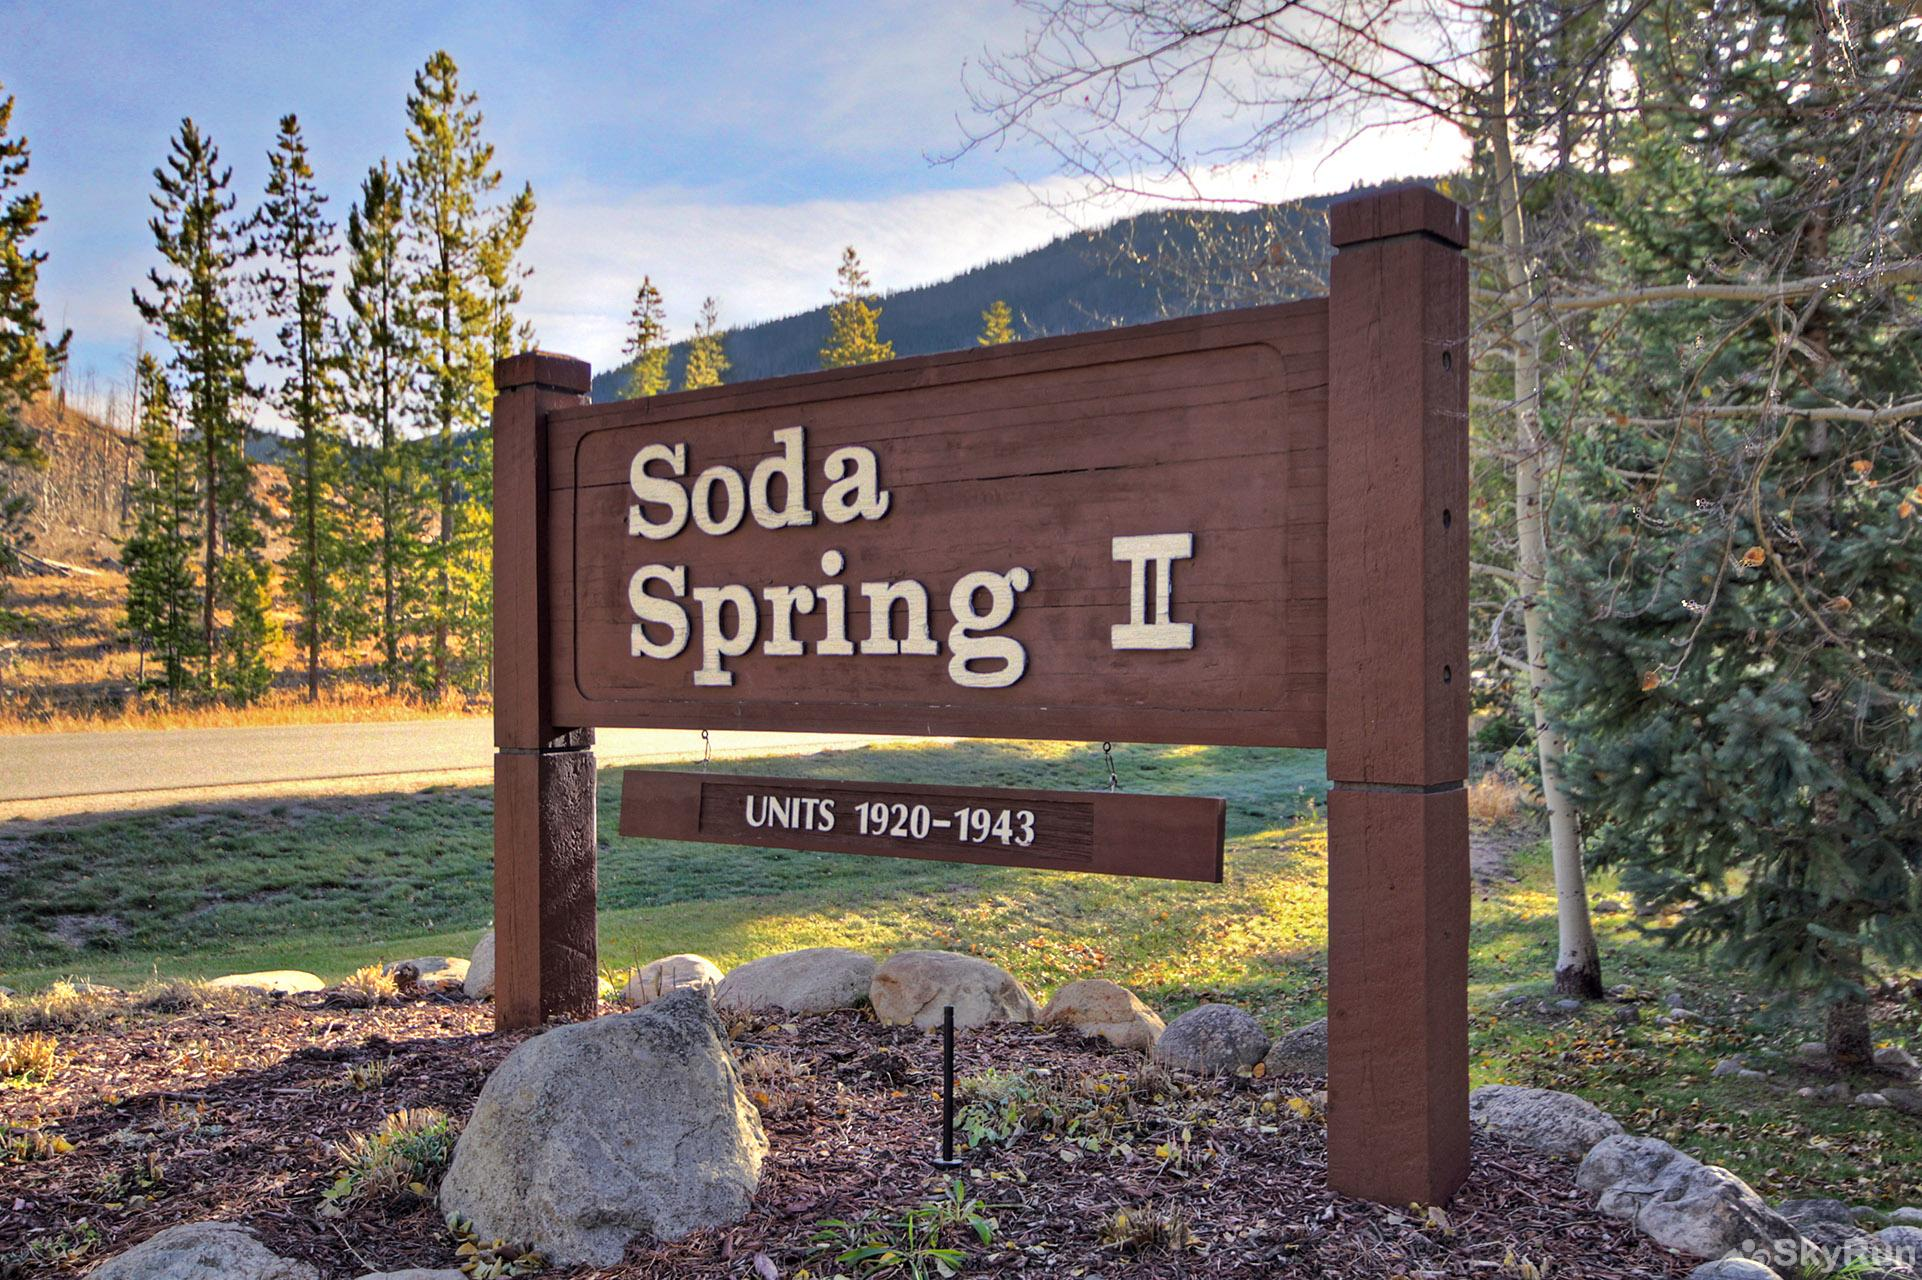 1931 Soda Springs II